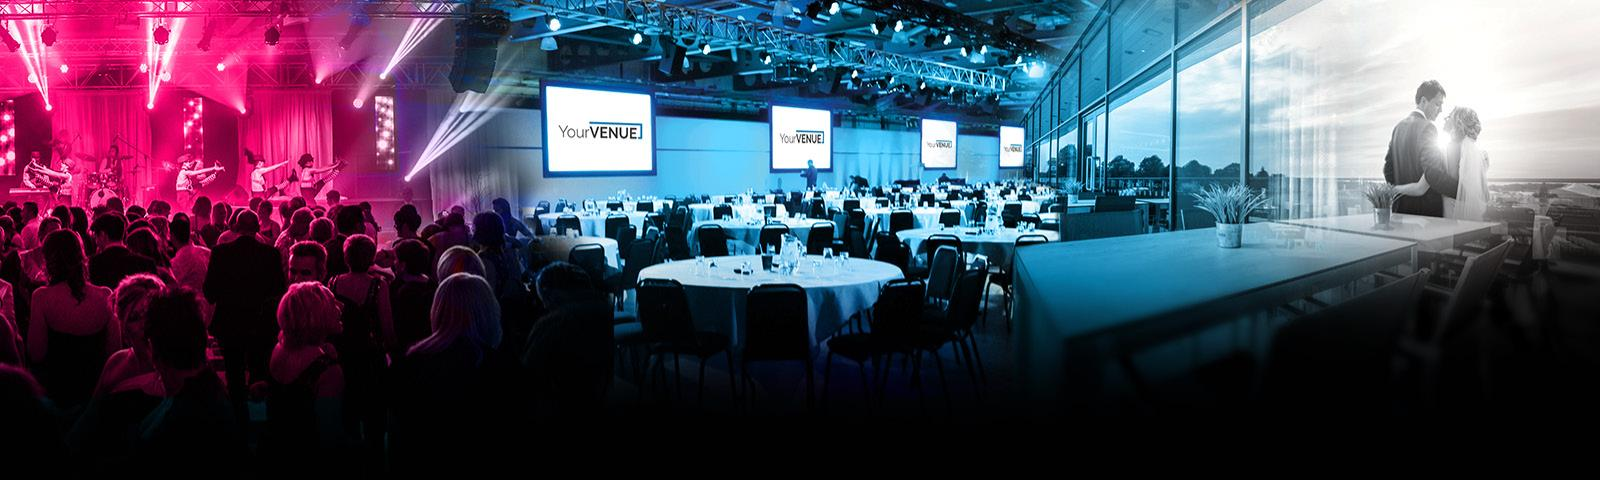 YourVENUE in association with Doncaster Racecourse. The ideal place for Business Meetings, Conferences & Events, and Weddings